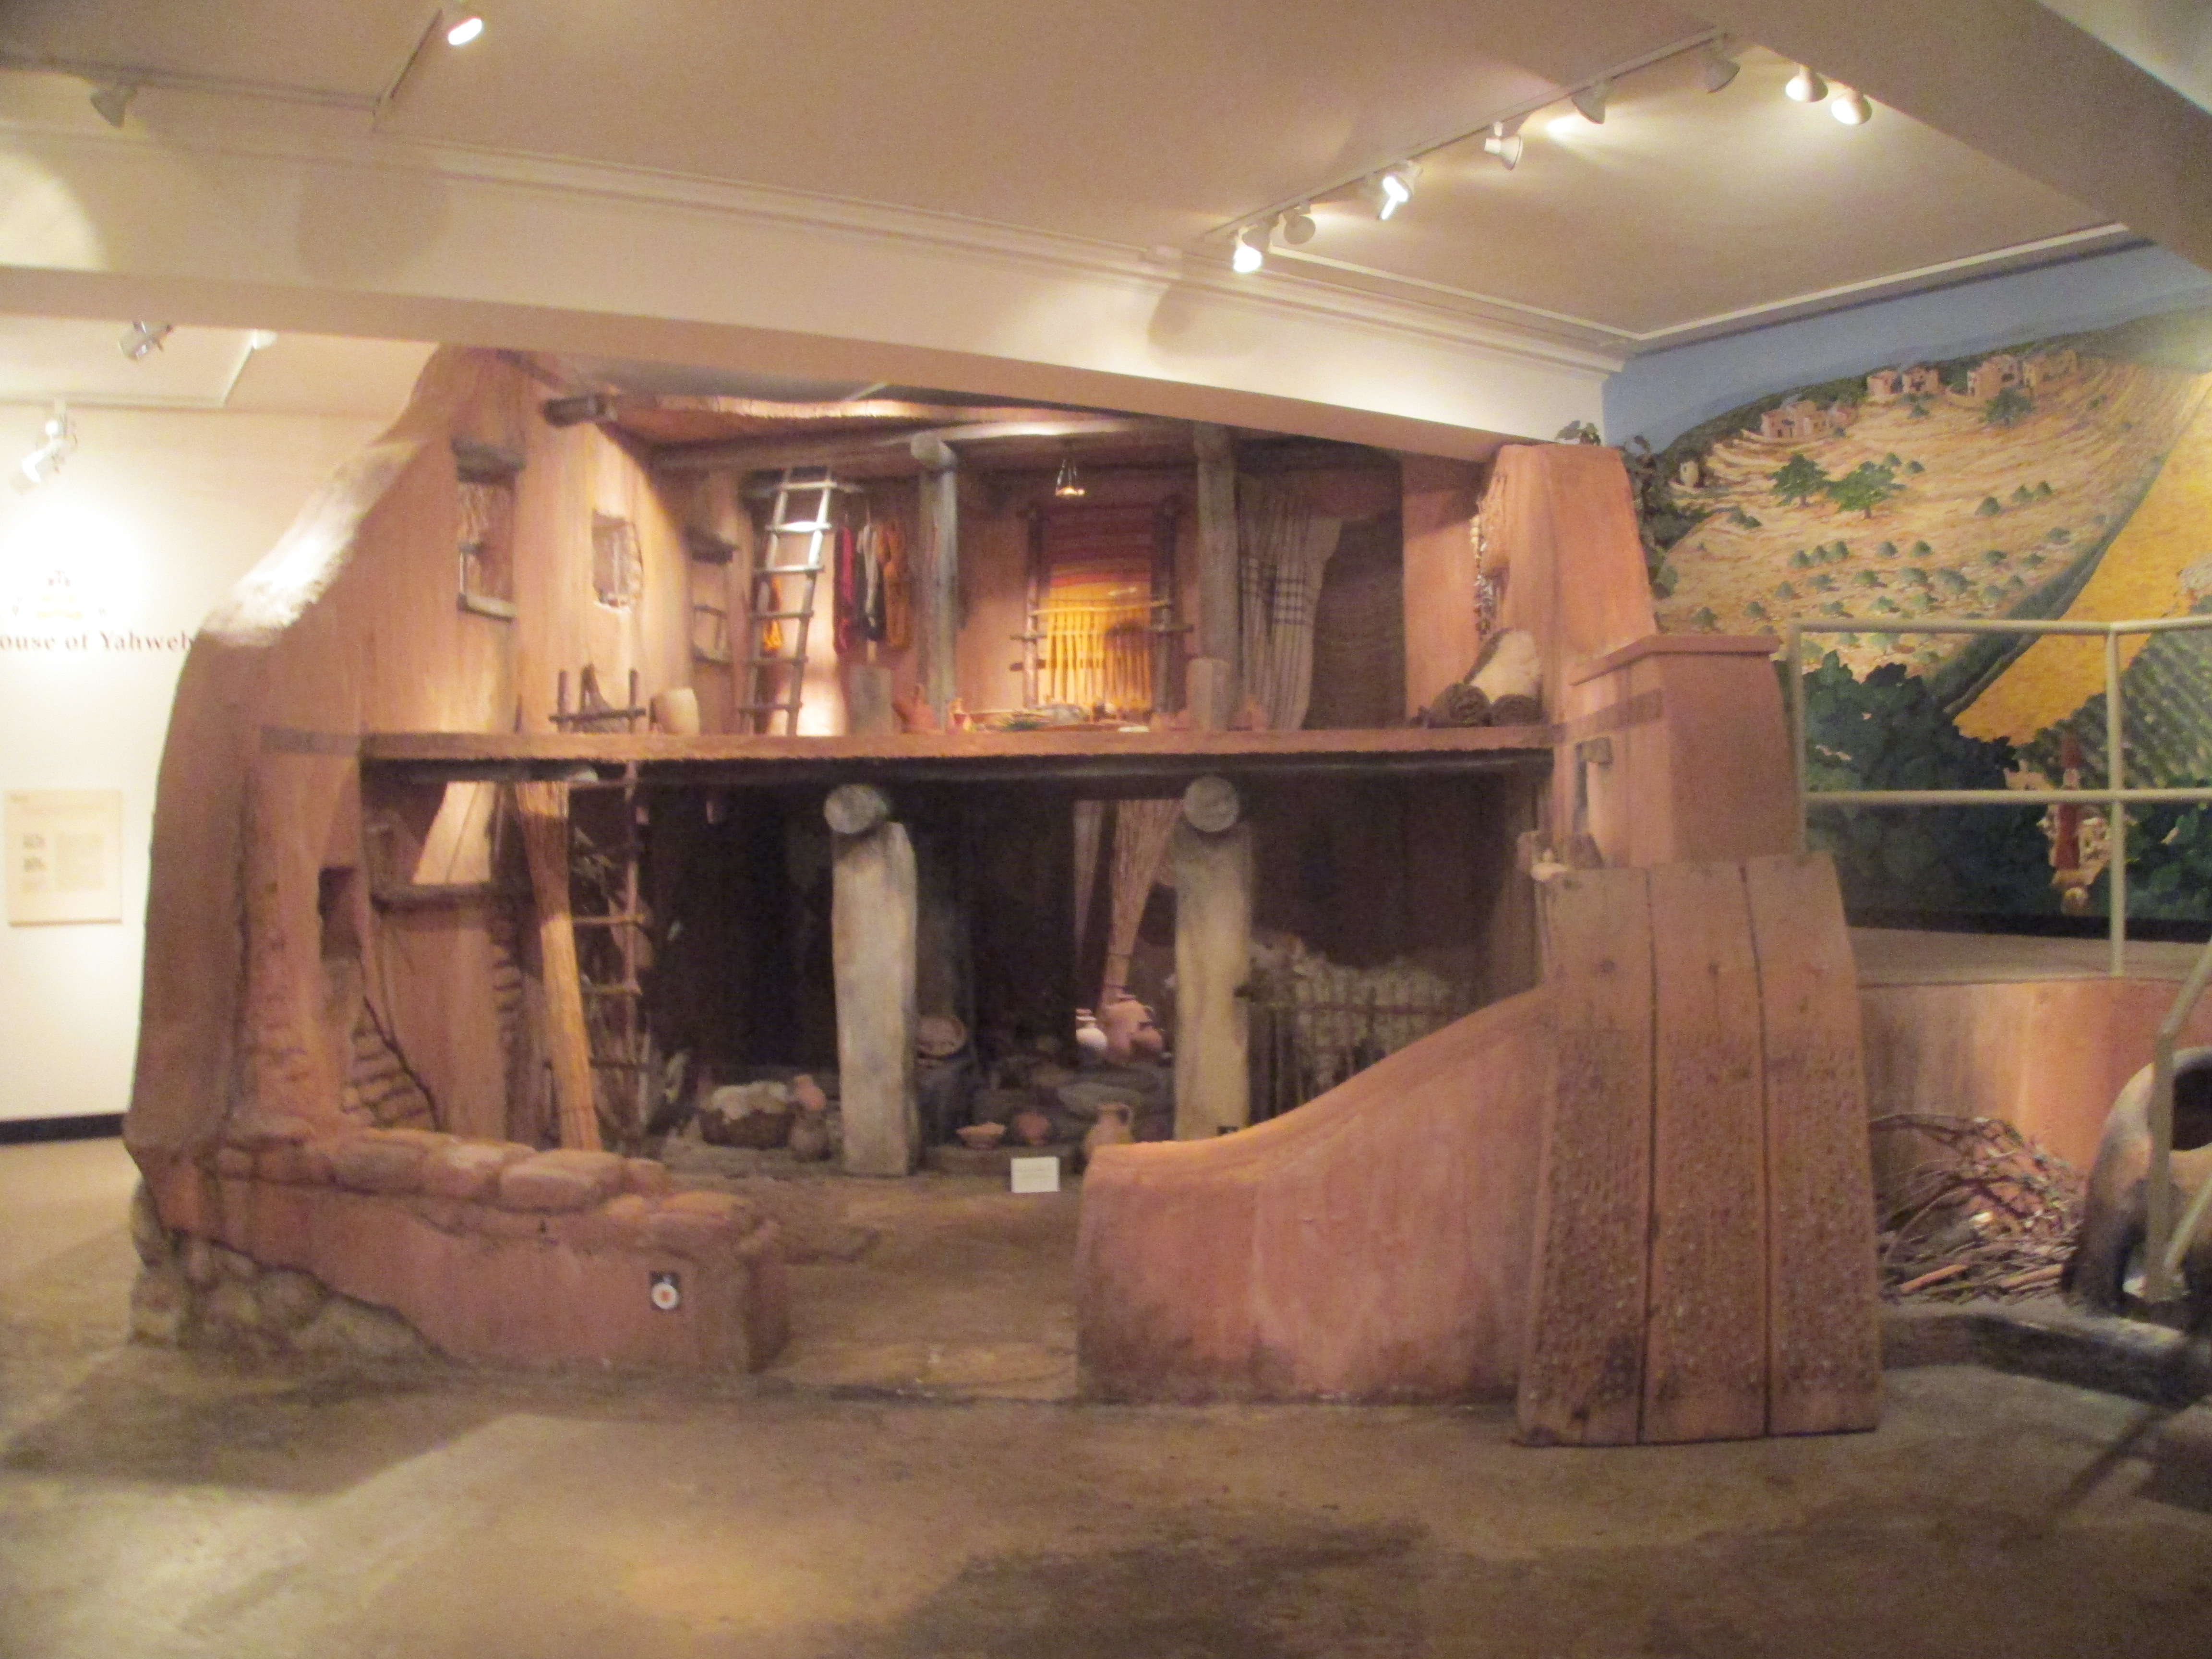 Exploring Massachusetts: March 20th 2013: Visiting Several Museums ...